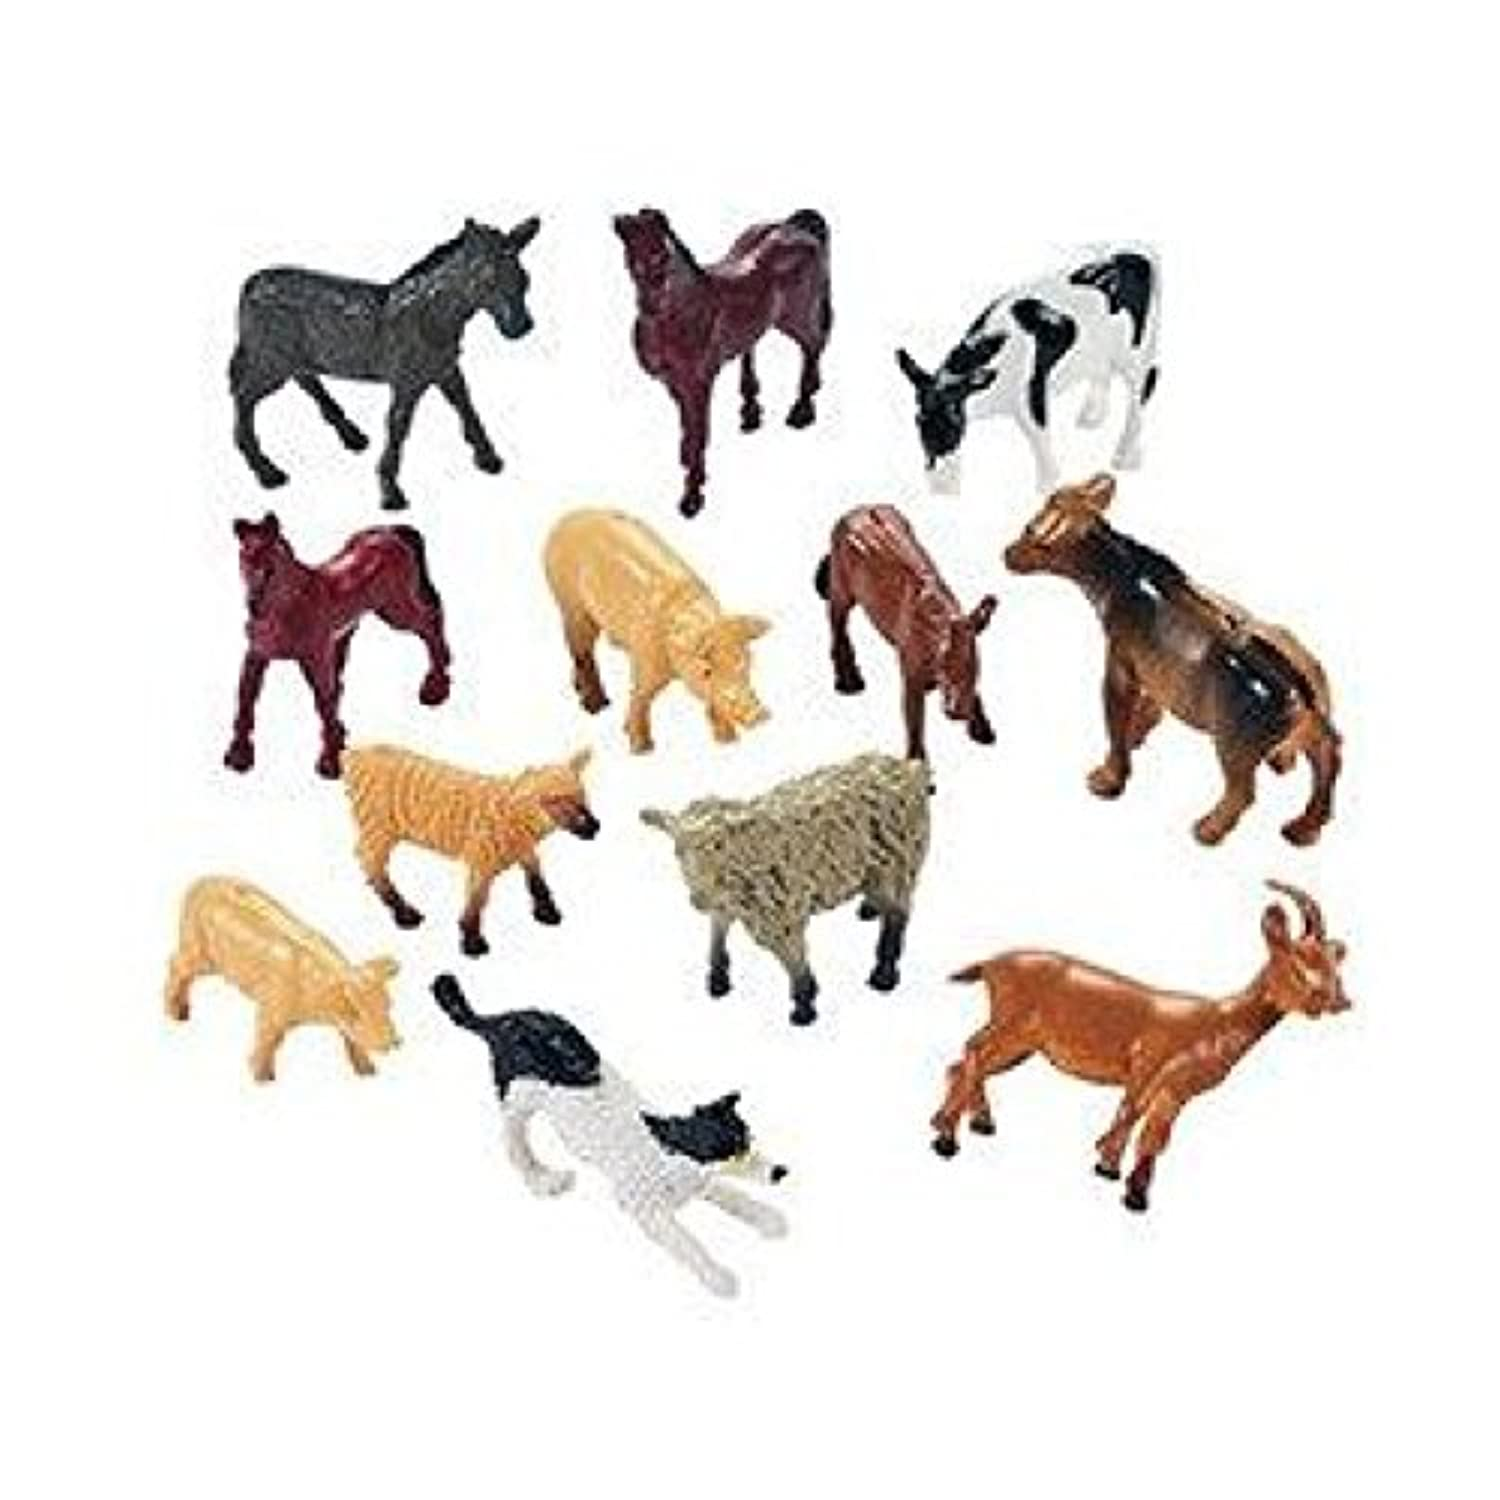 12 Farm Animal Miniature Toy Figures